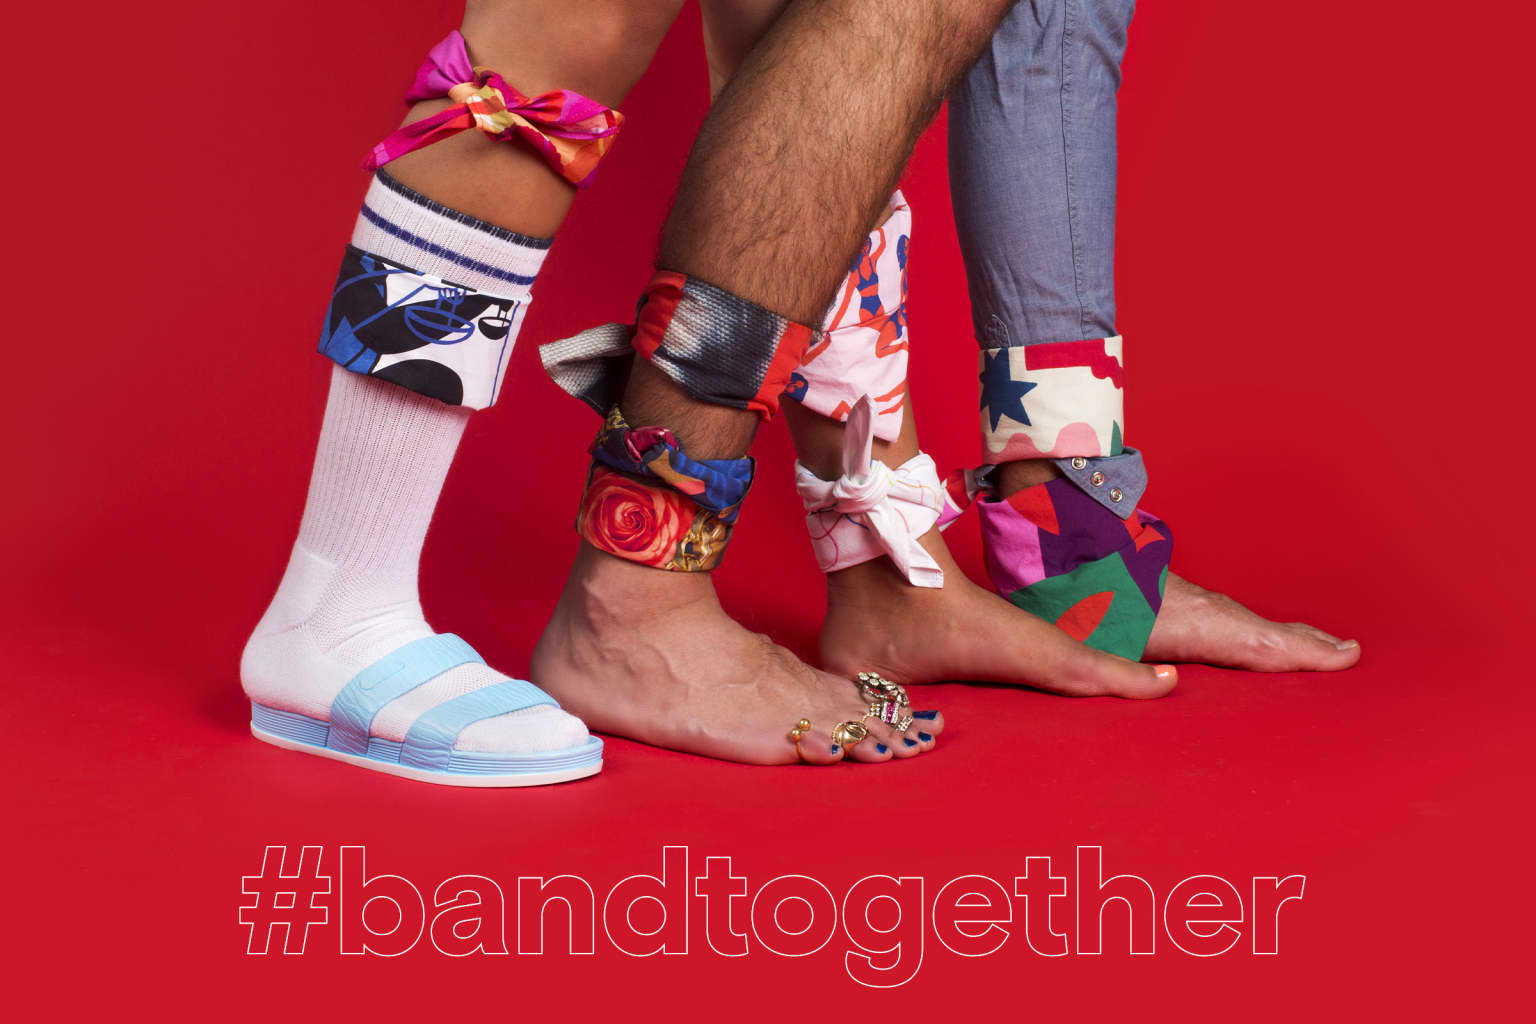 #bandtogether